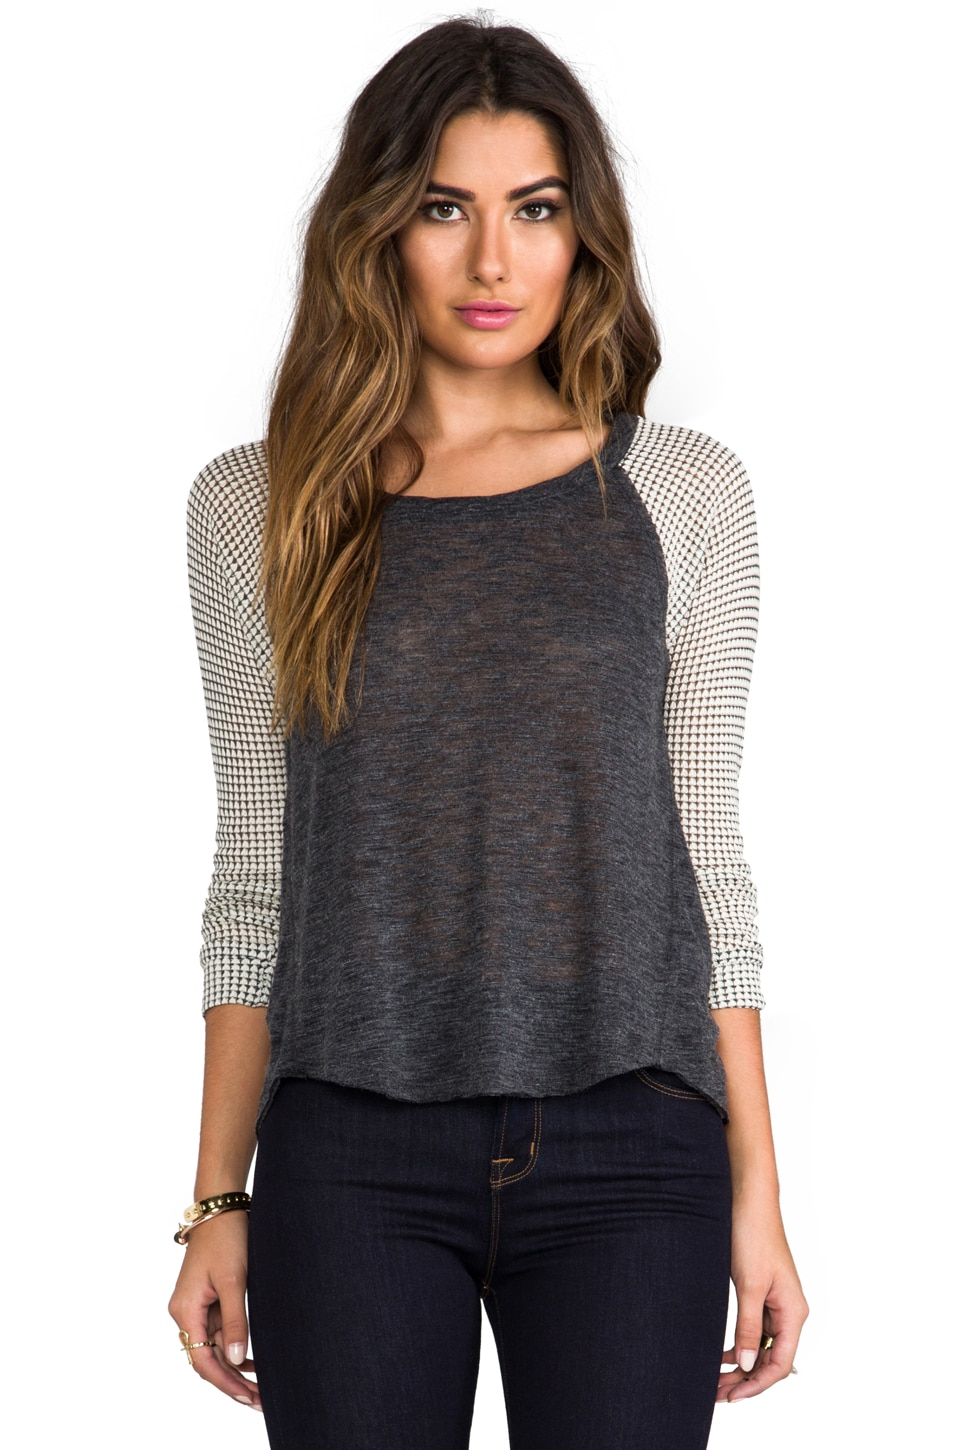 Splendid Azulon Knit Jersey in Charcoal